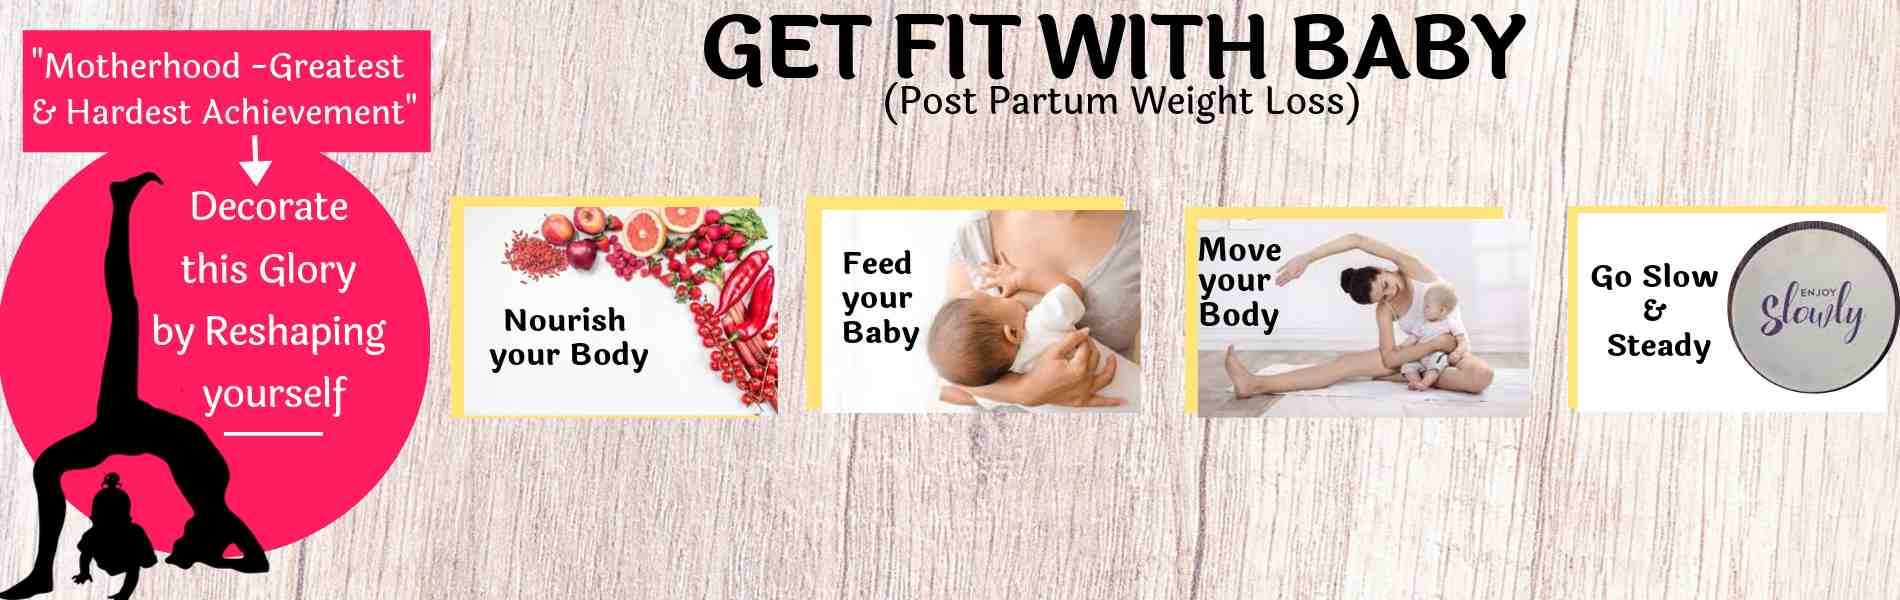 weight loss after delivery